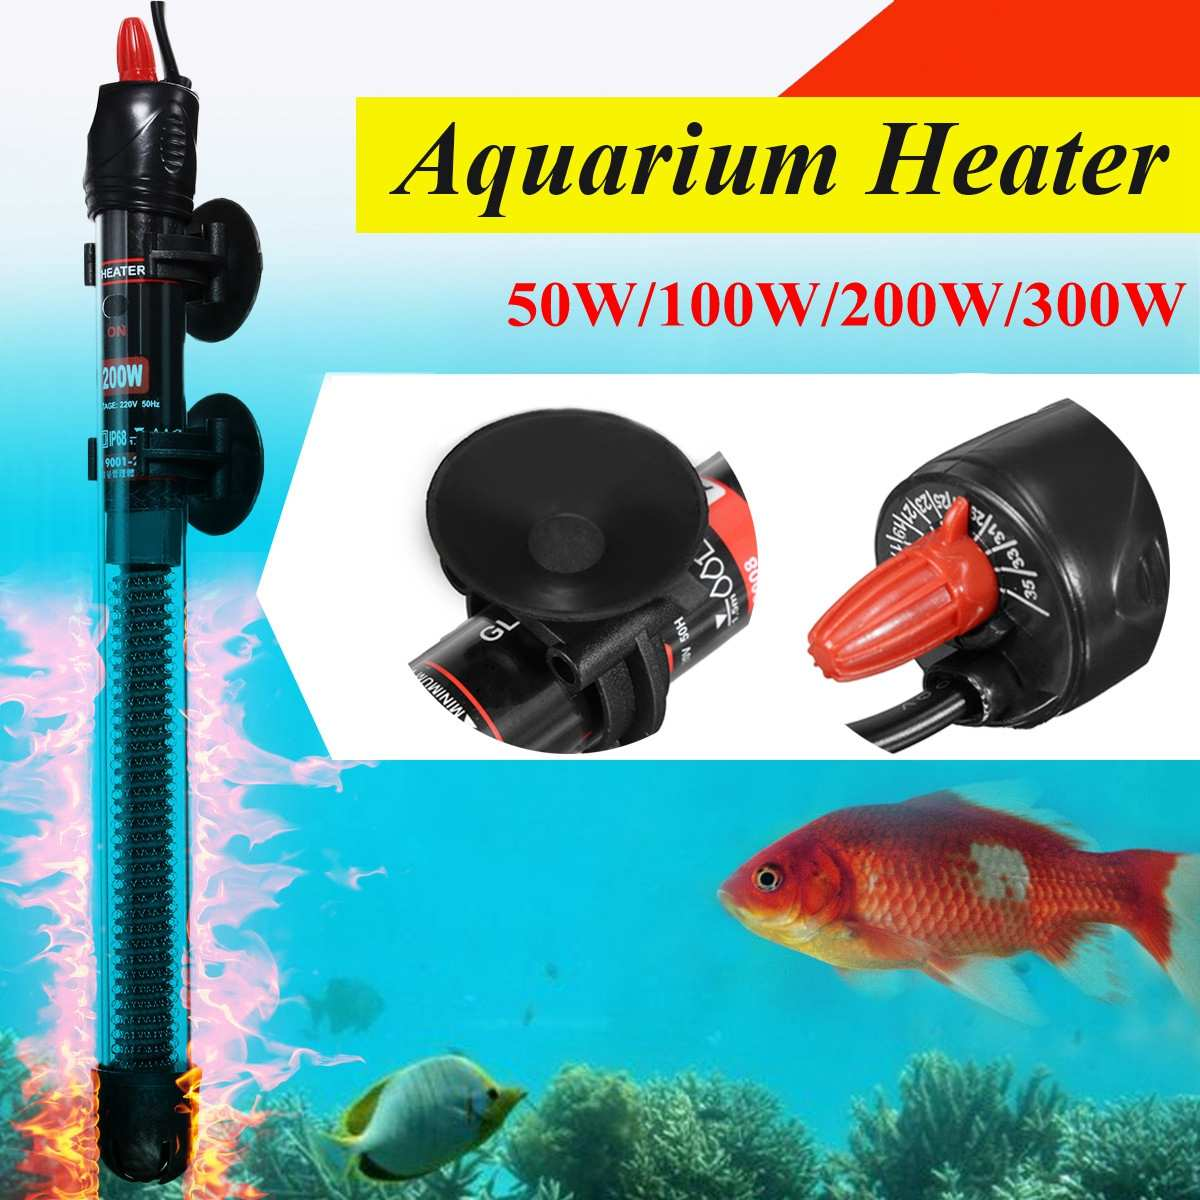 50W-300W Stainless Steel Aquarium Fish Tank Water Heater Mini Adjustable Heating Rod For Aquarium Temperature Control